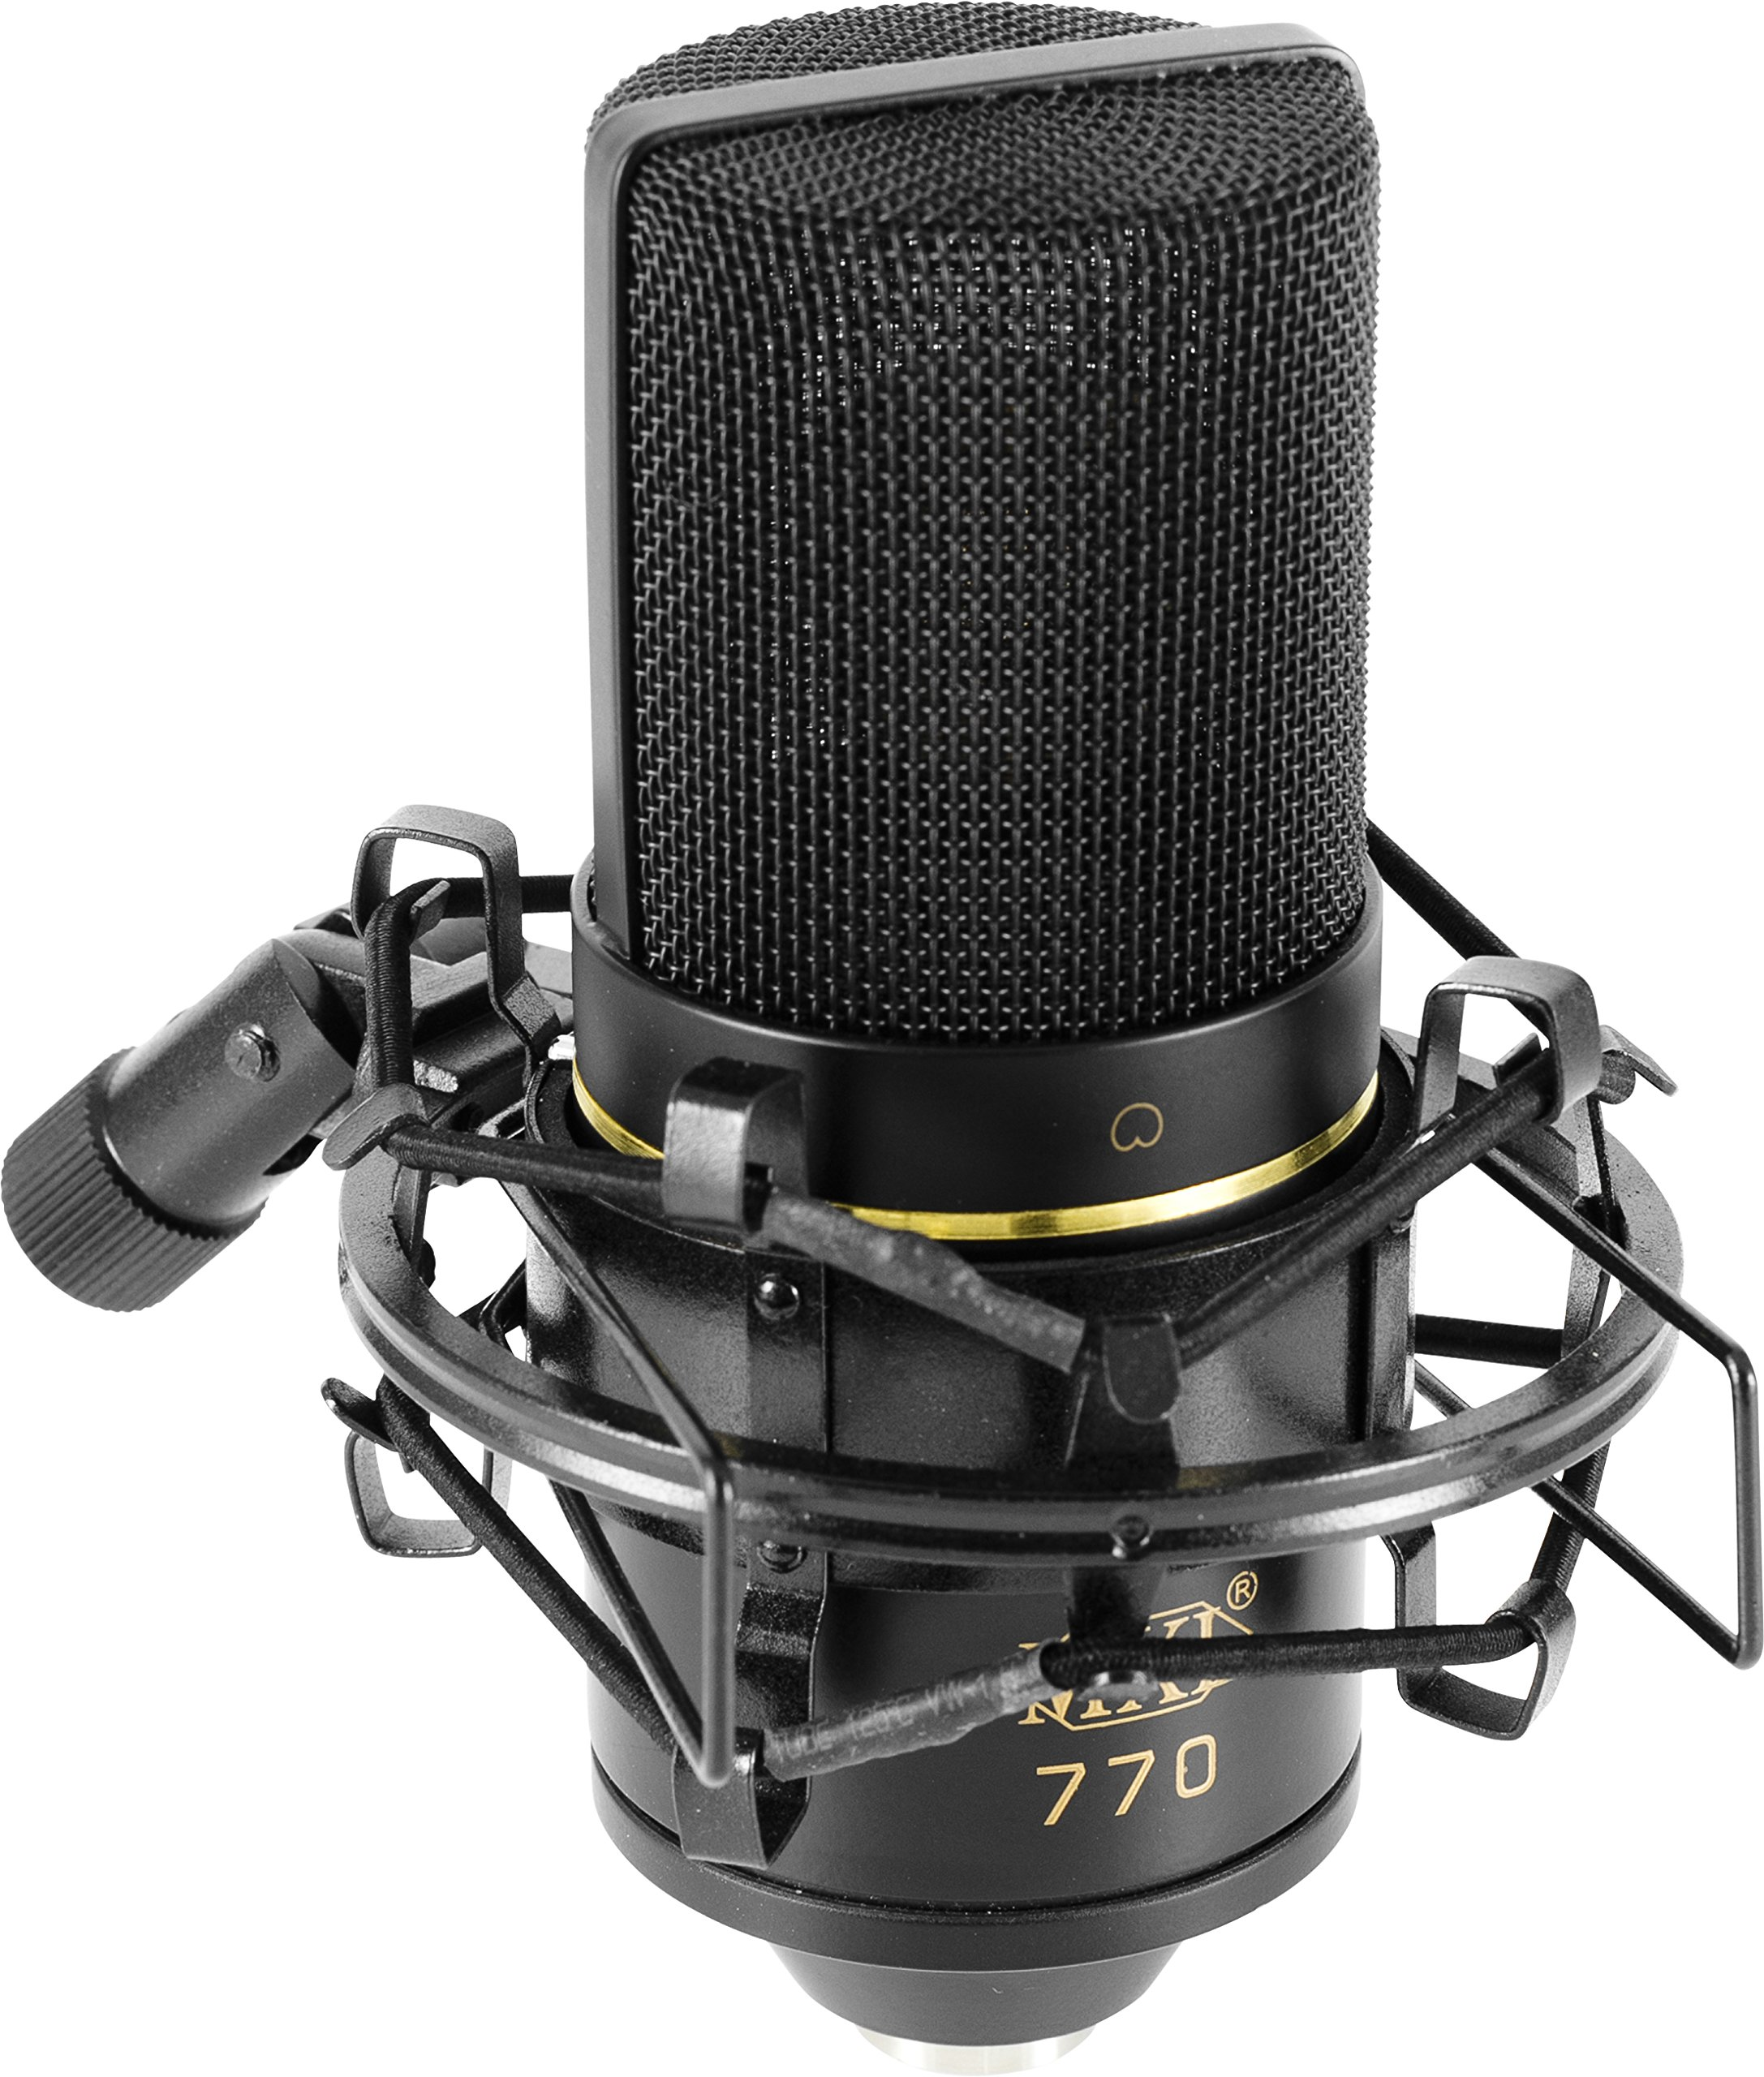 MXL 770 Cardioid Condenser Microphone by MXL Mics